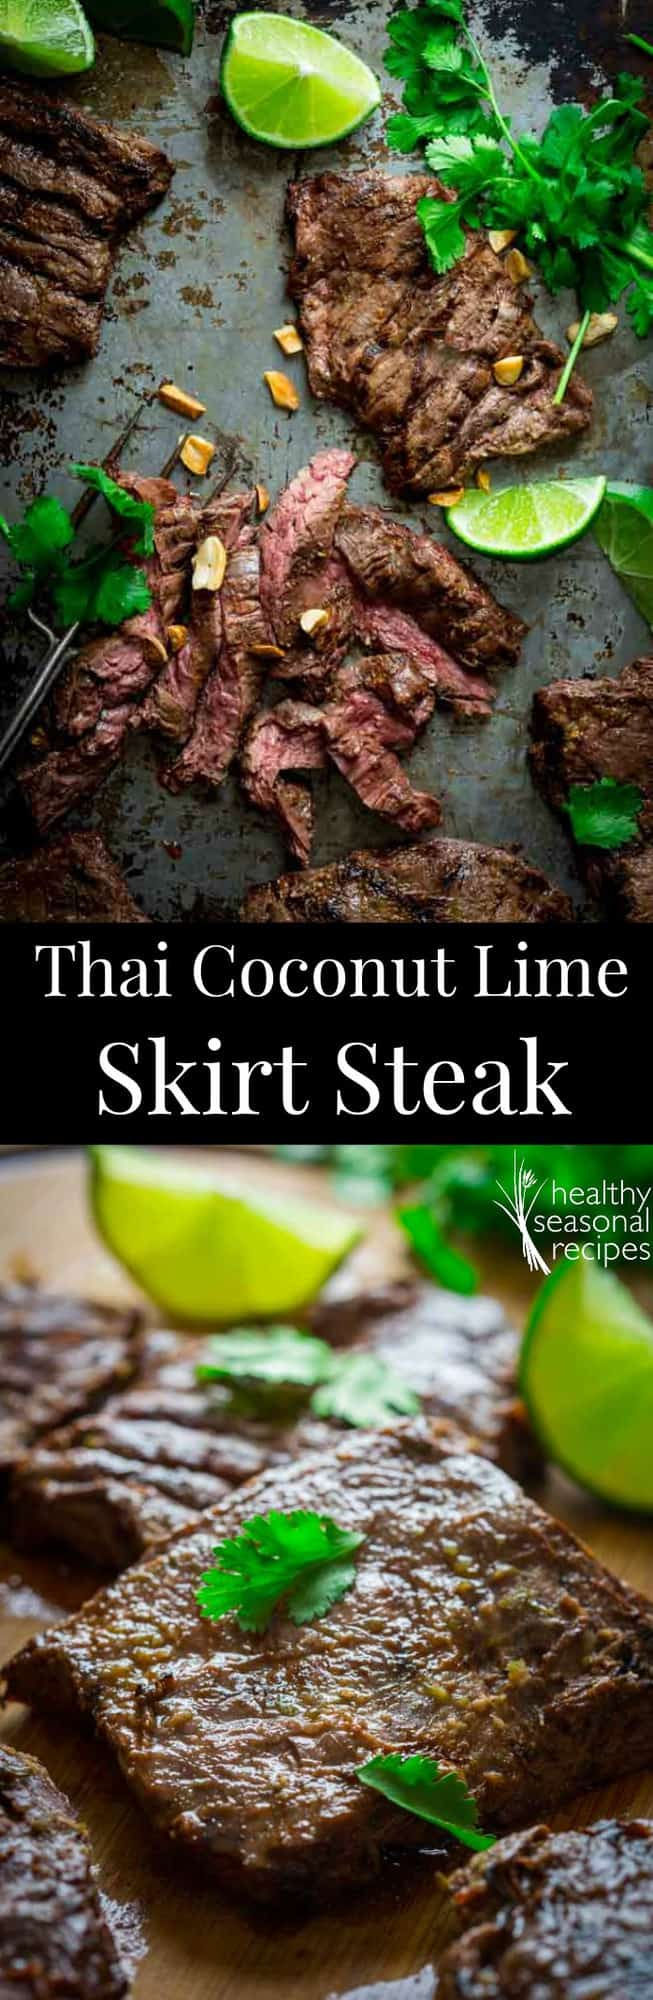 This Thai coconut lime grilled skirt steak is so juicy and flavorful! Even better, this easy steak recipe requires less than 15 minutes of hands on prep work! #skirtsteak #steak #beef #thai #coconut #lime #steakrecipe #grilled #grilling #healthy #easy #dinner